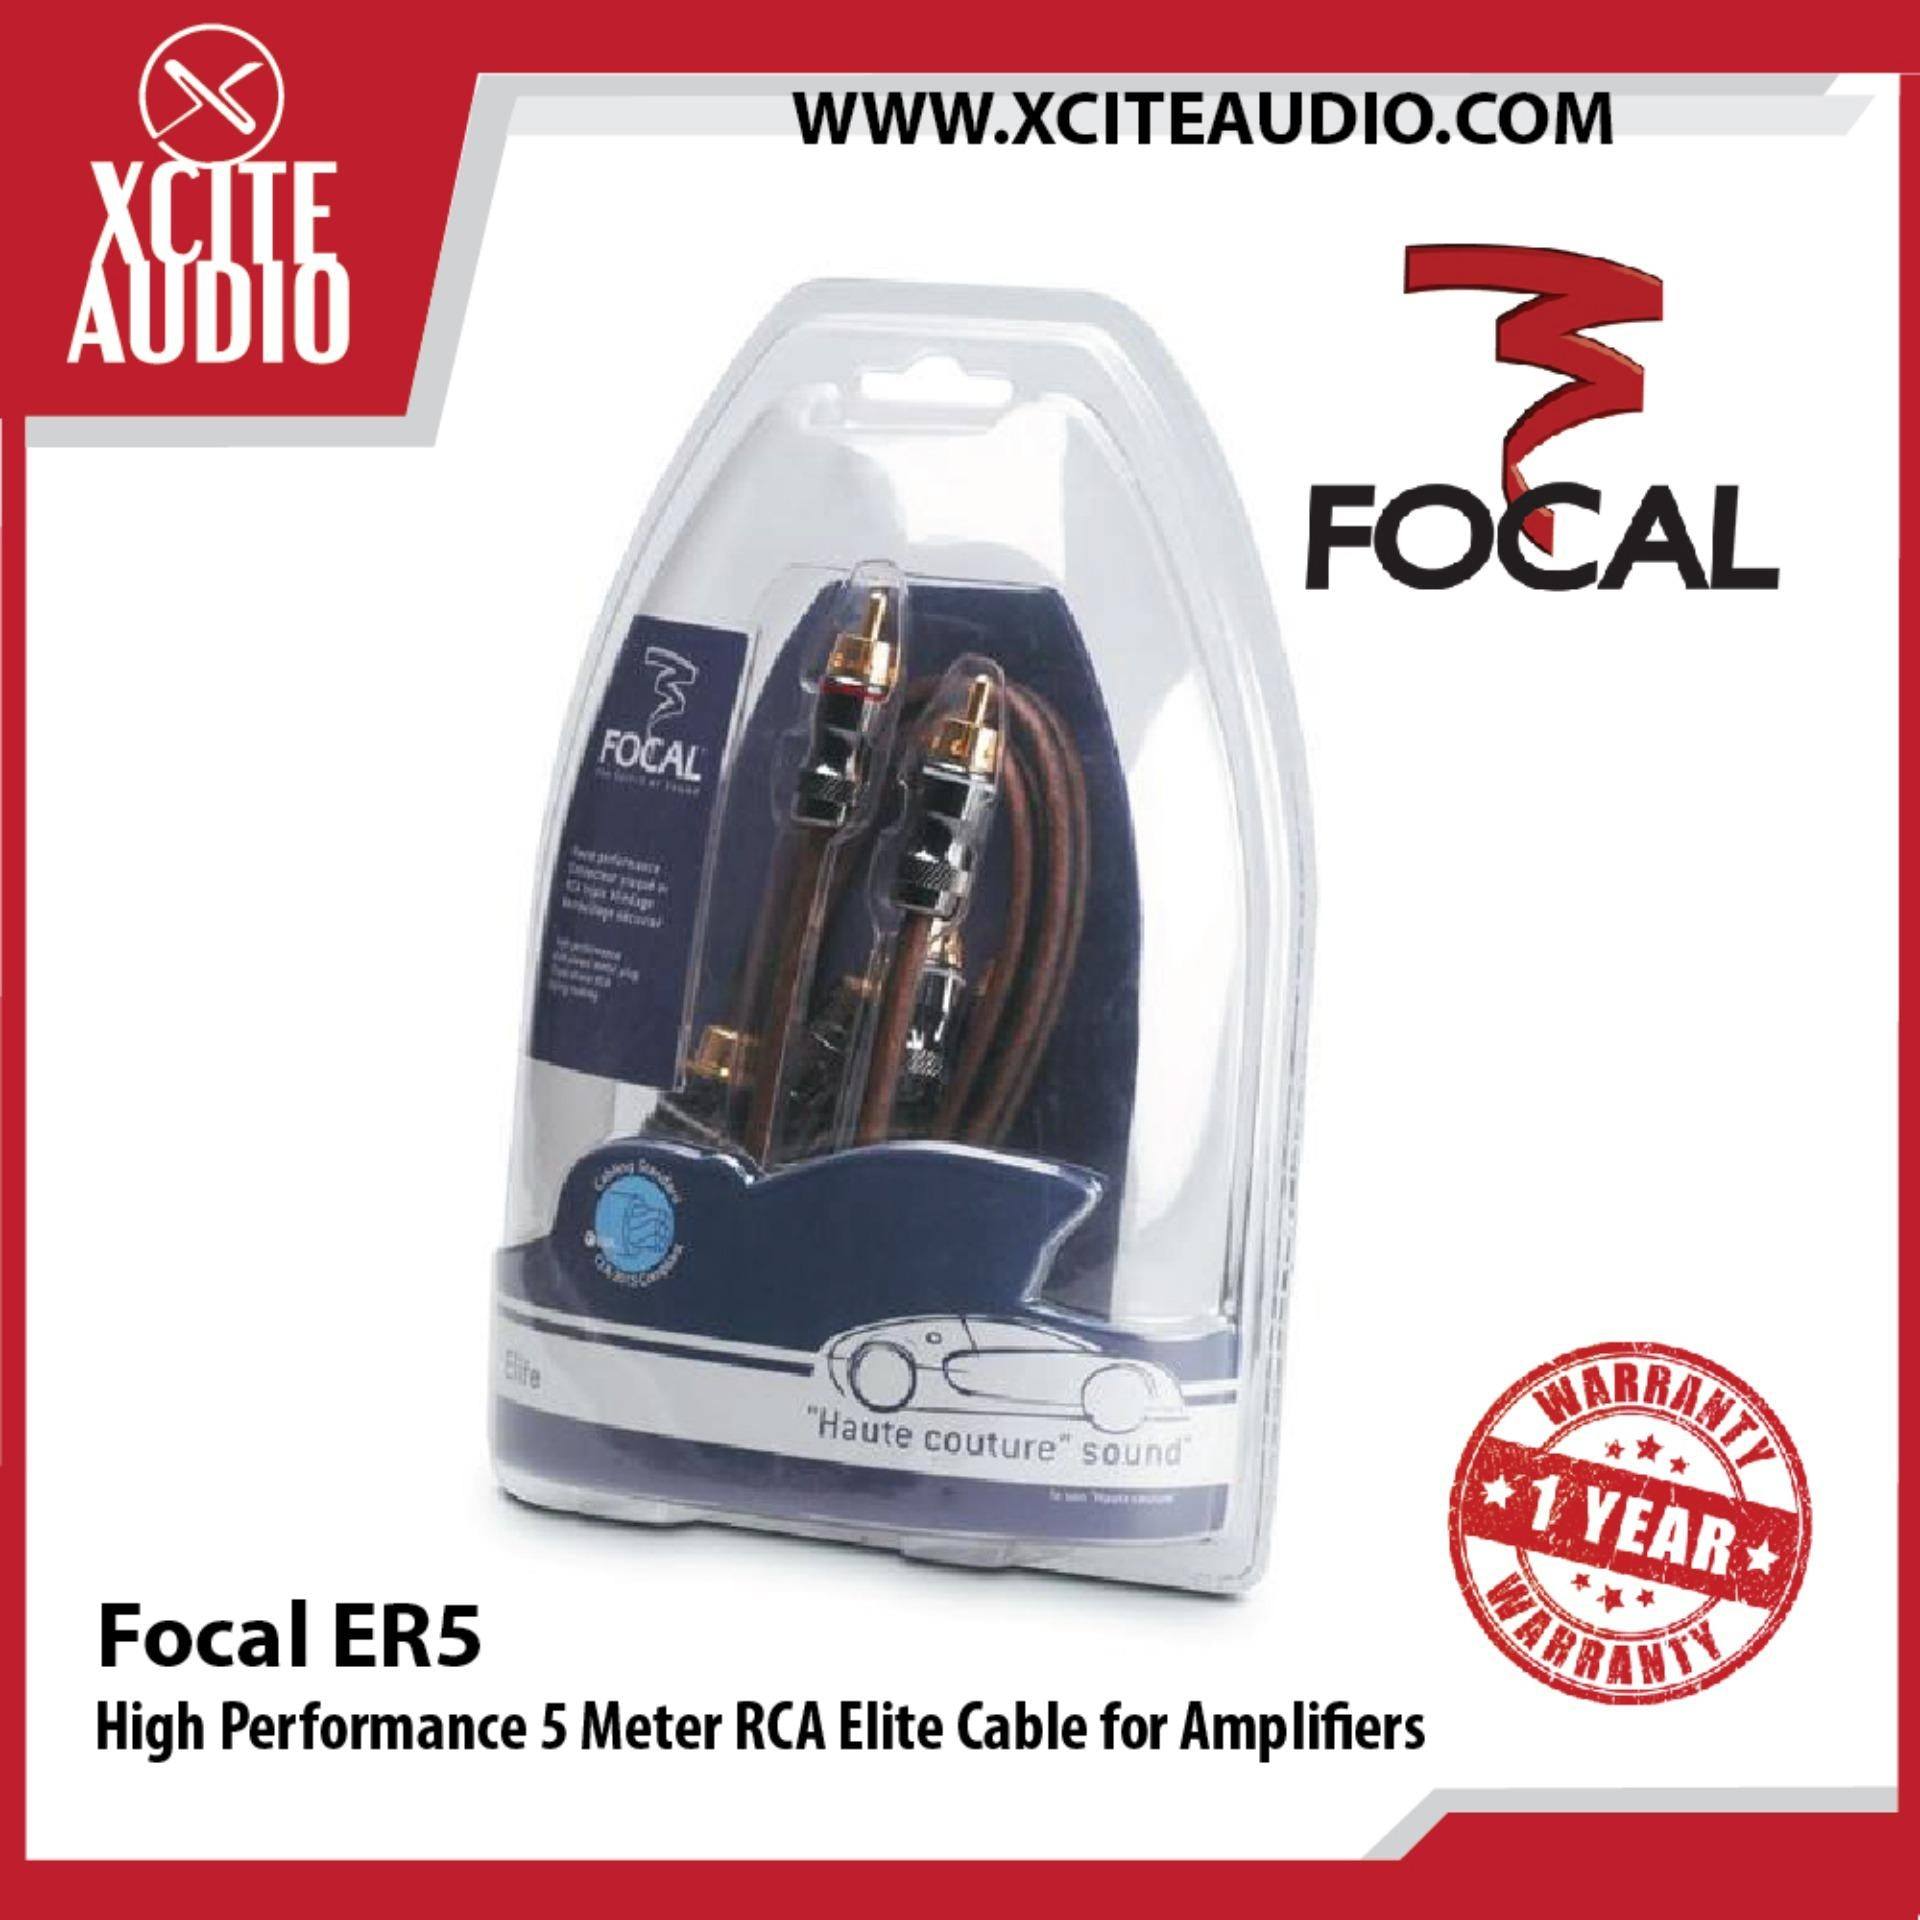 Focal ER5 High Performance 5 Meter RCA Elite Cable for Amplifiers